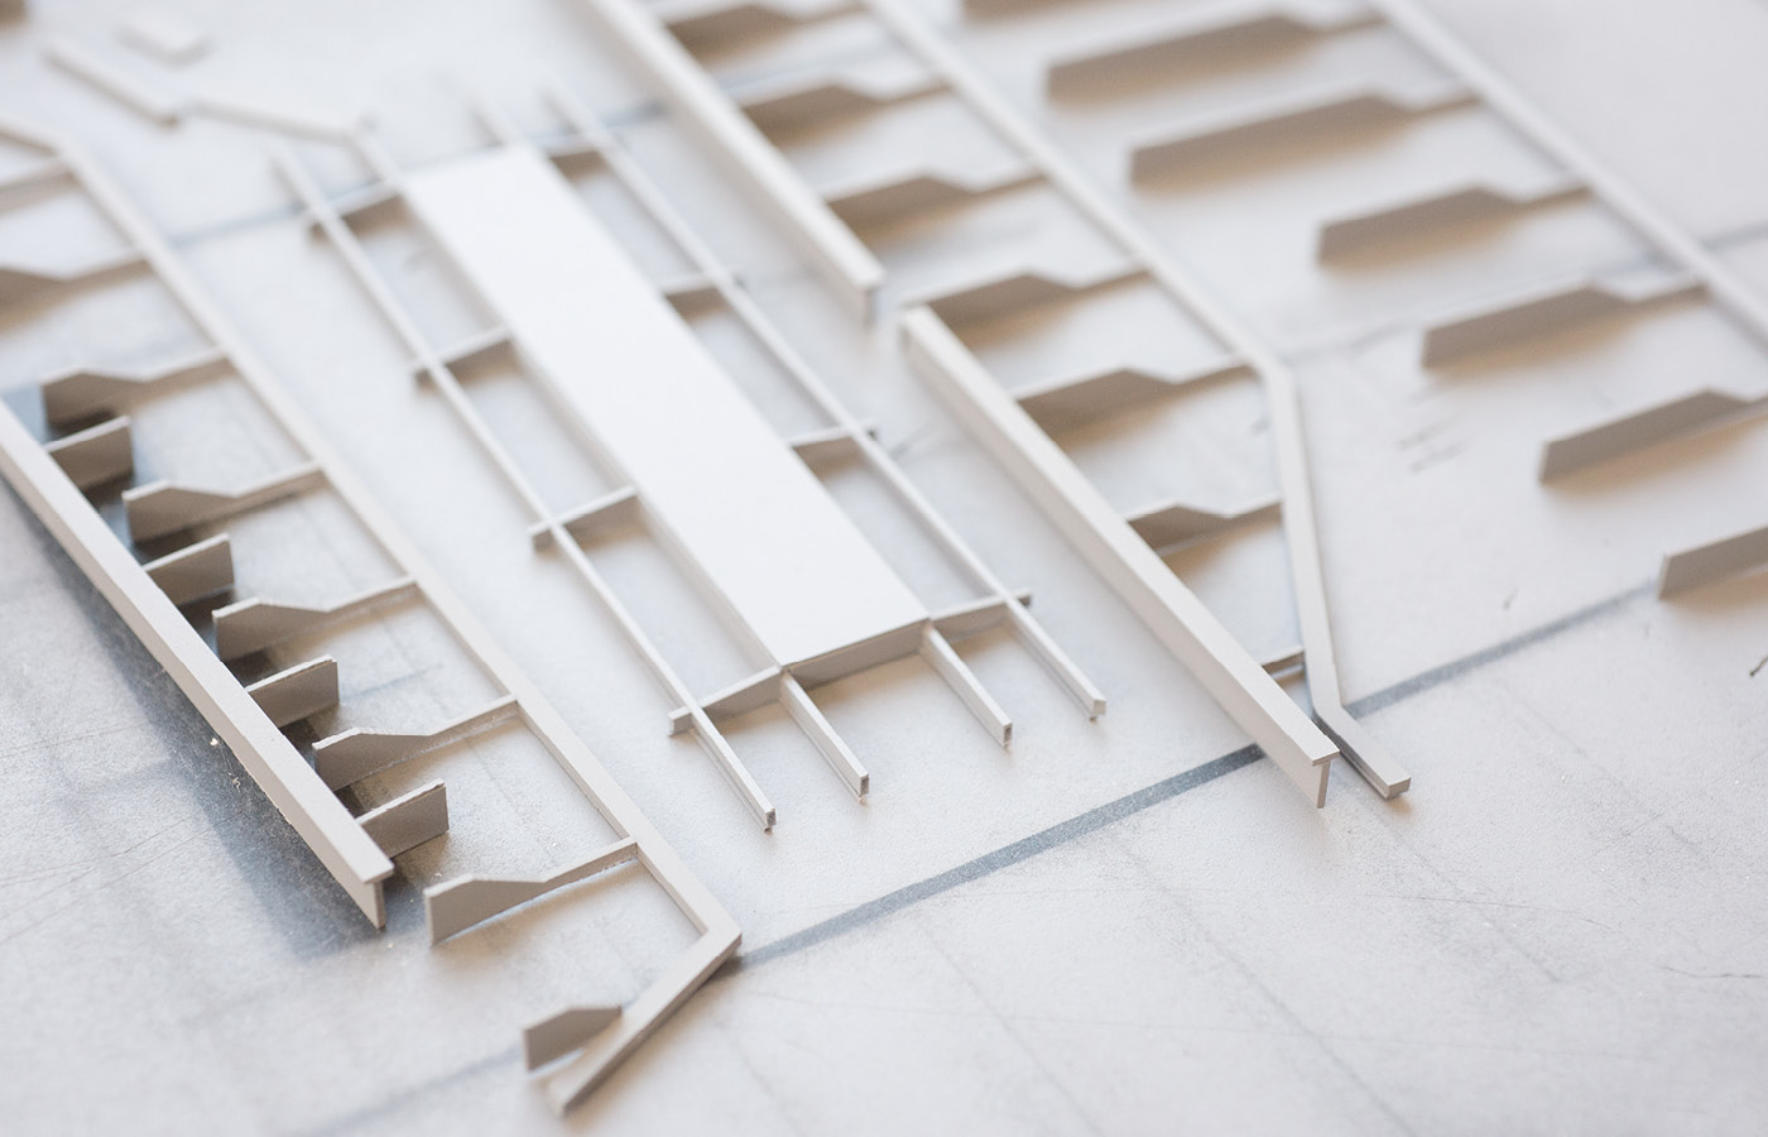 modelshop wilkinsoneyre each and every project requires close collaboration between the client architect and model maker in order to make the most of the journey